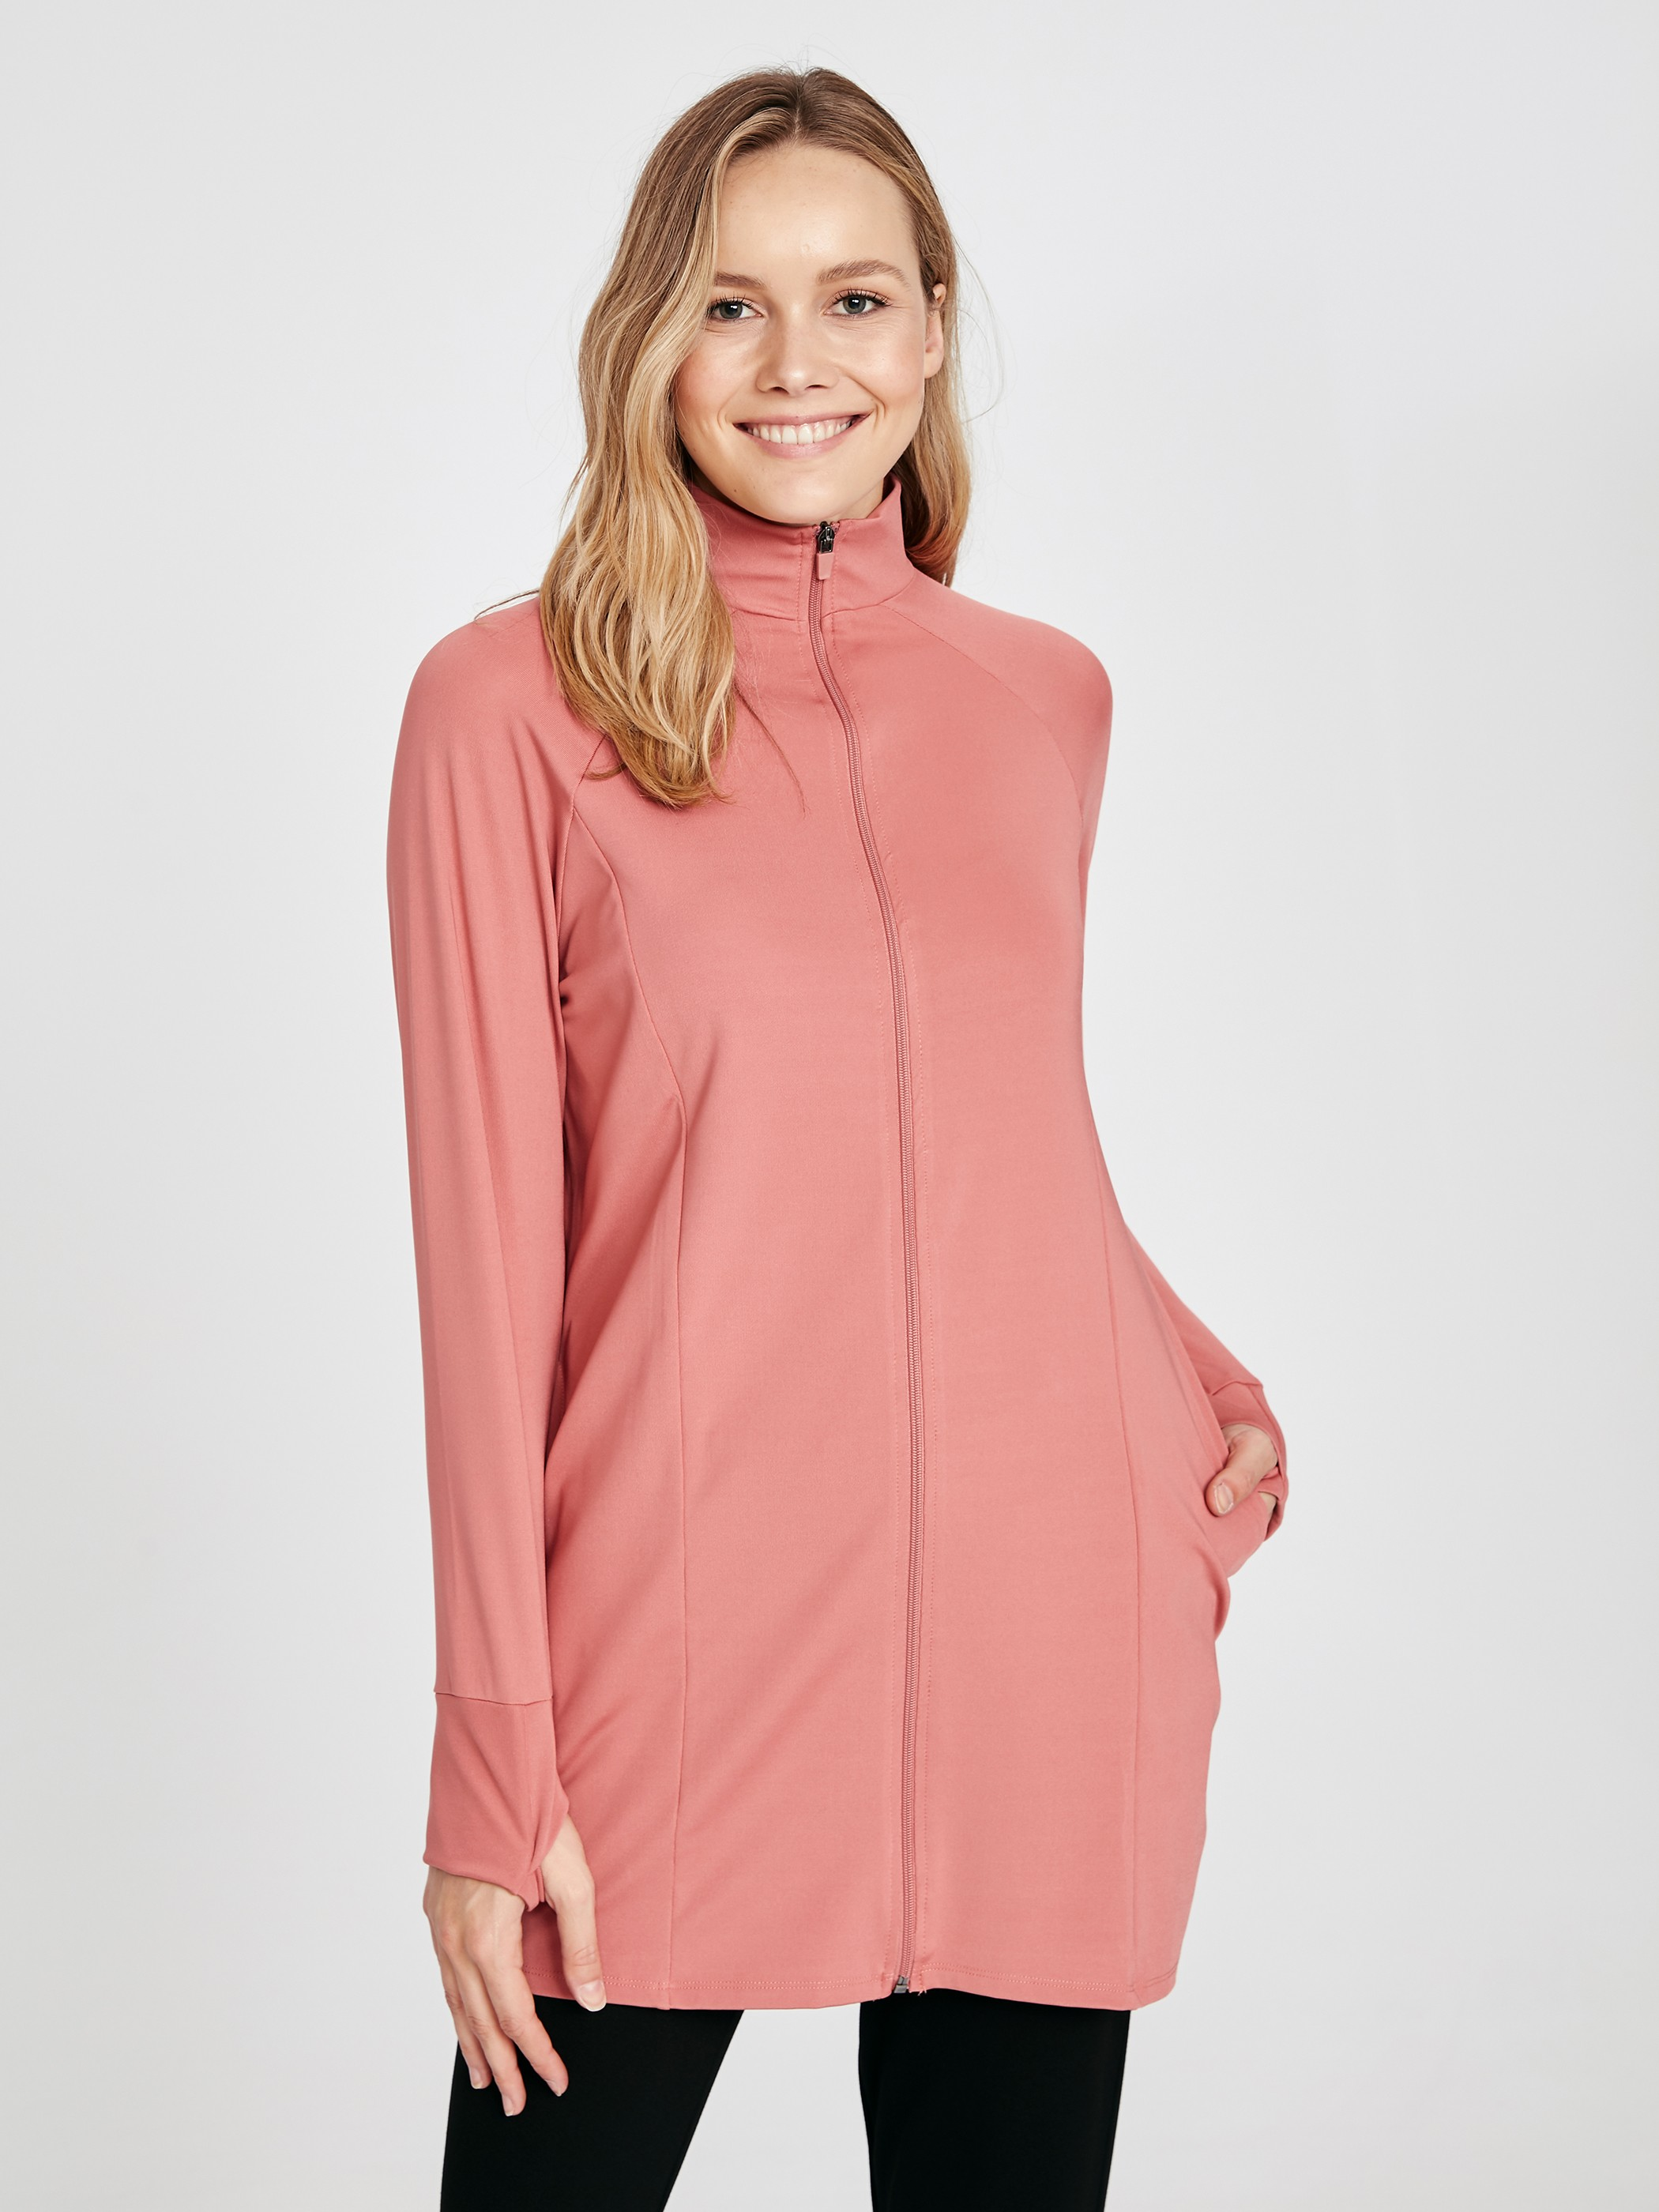 PINK - Cardigan Track Top - 9SS342Z8